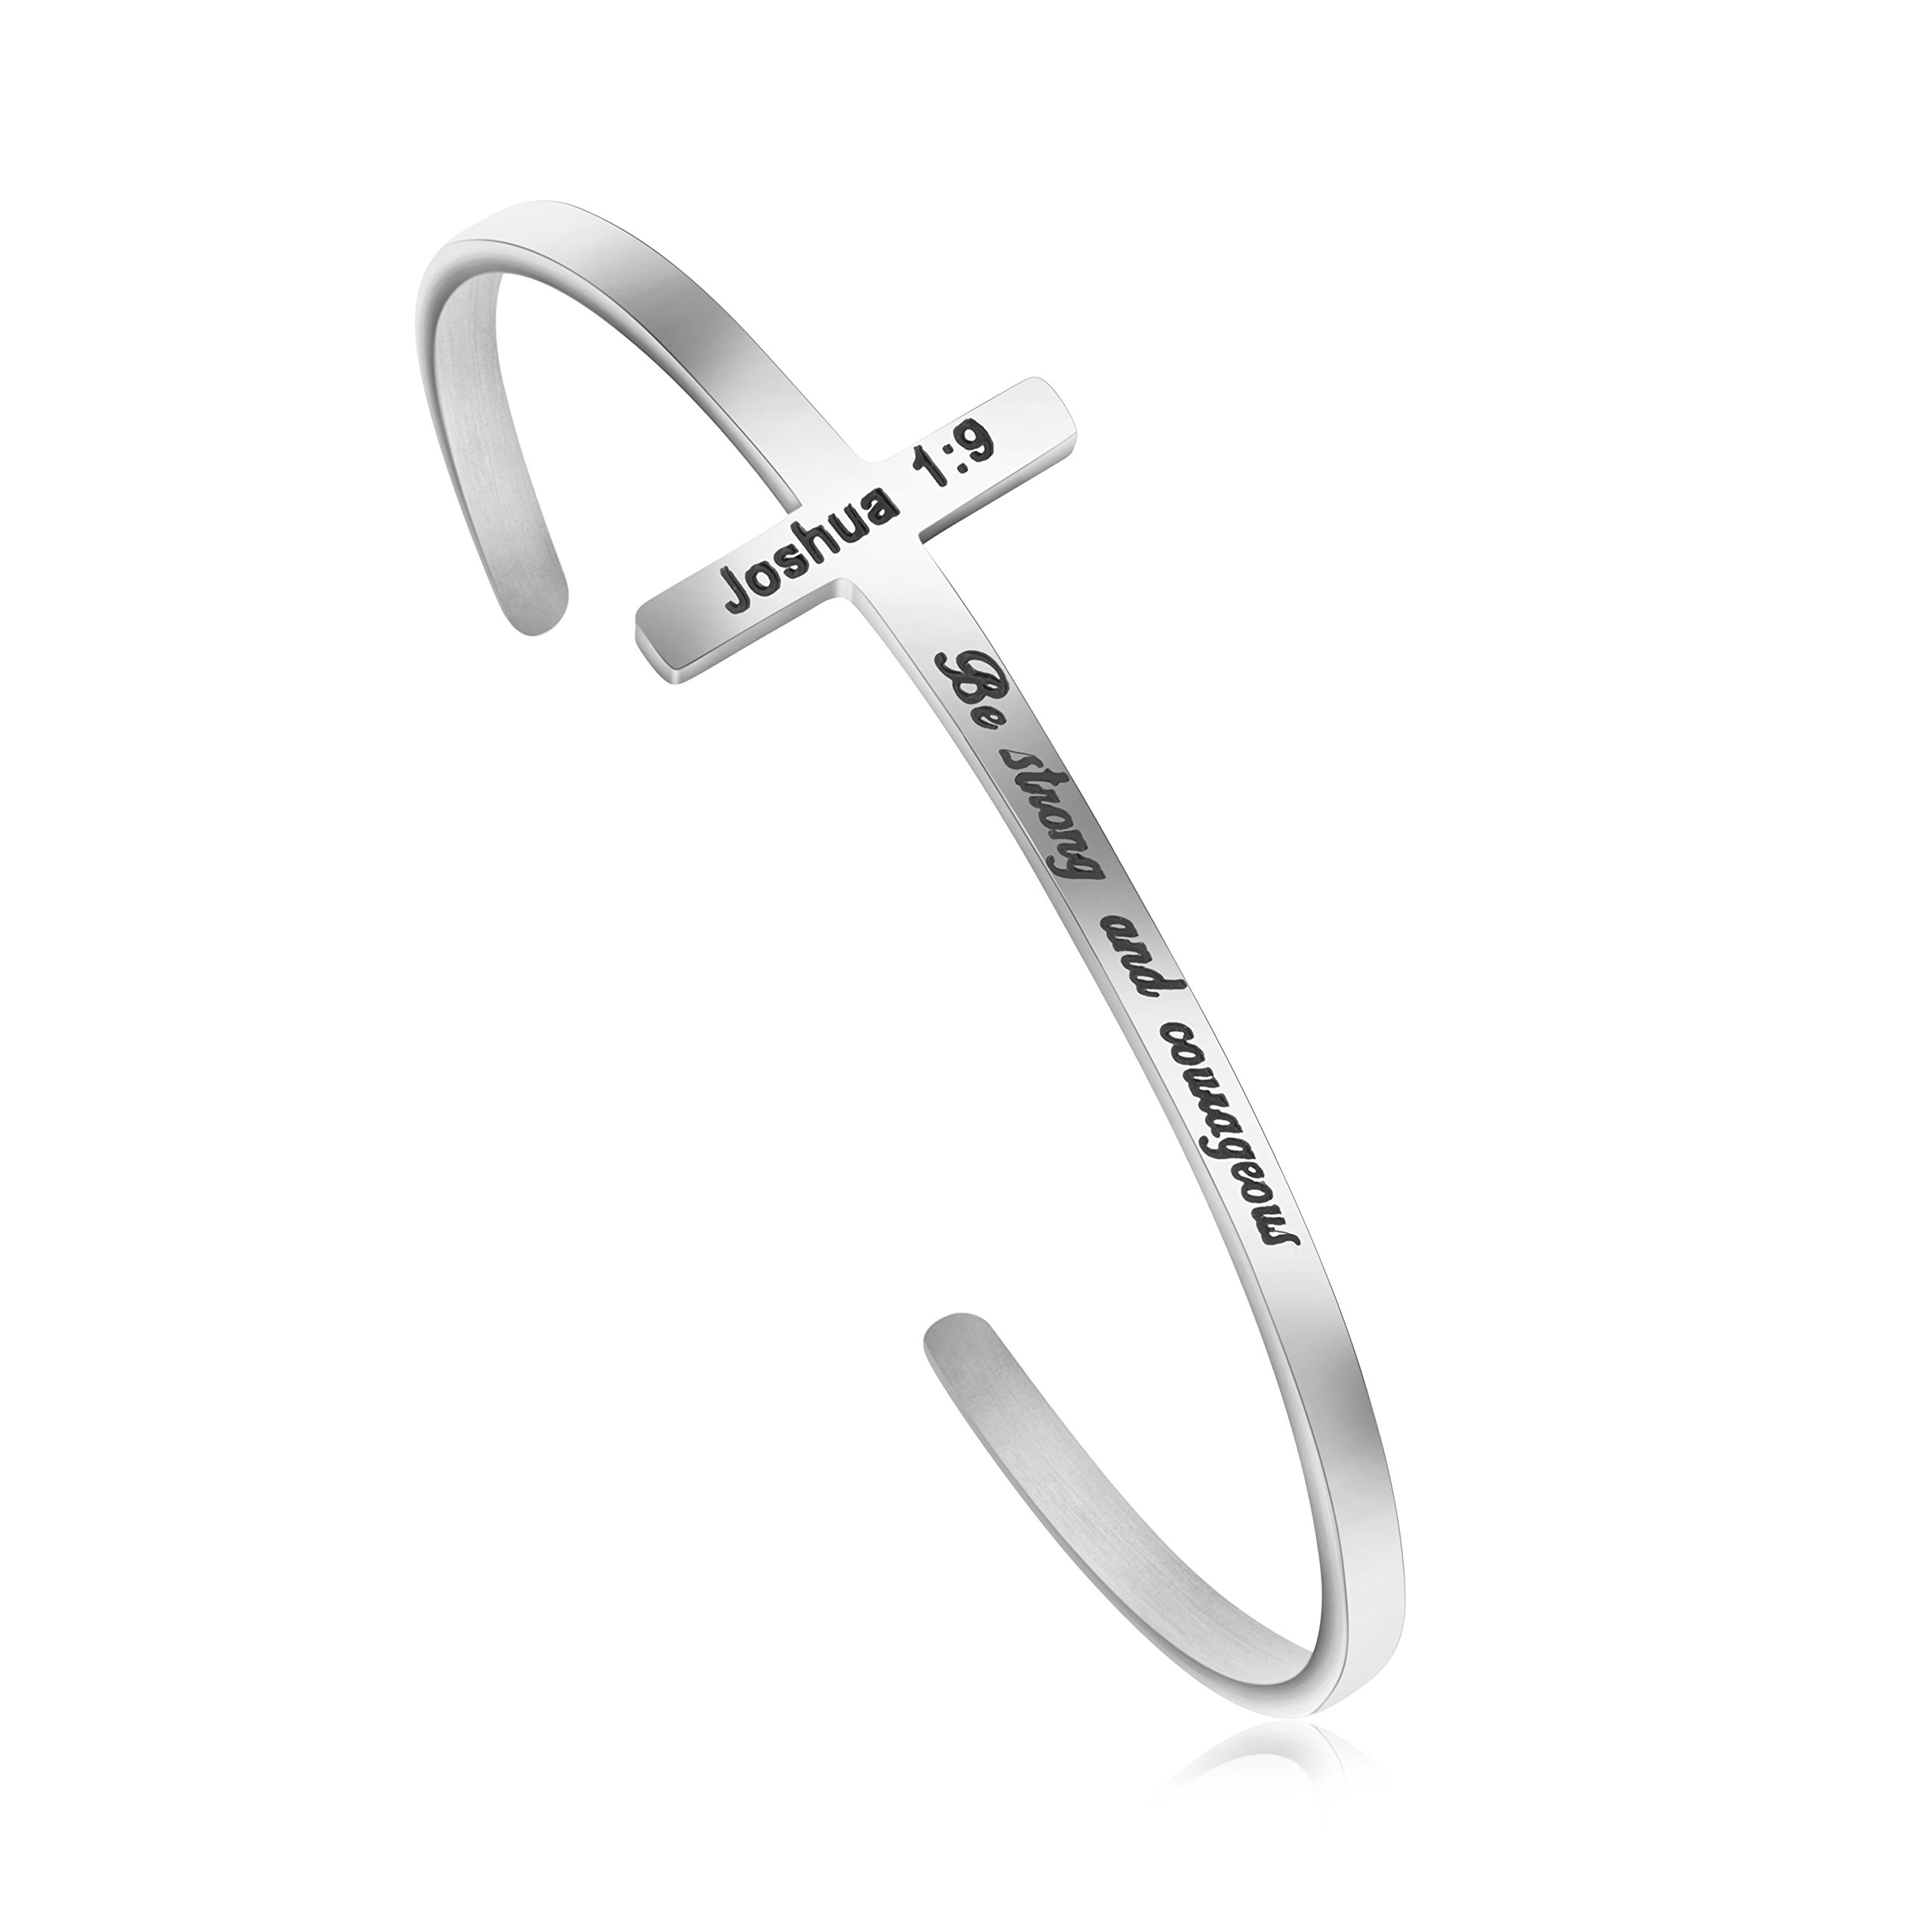 Memgift Inspirational Cross Bracelet Bible Verse Jewelry Cuff Bangle Gift Engraved Be Strong and Courage